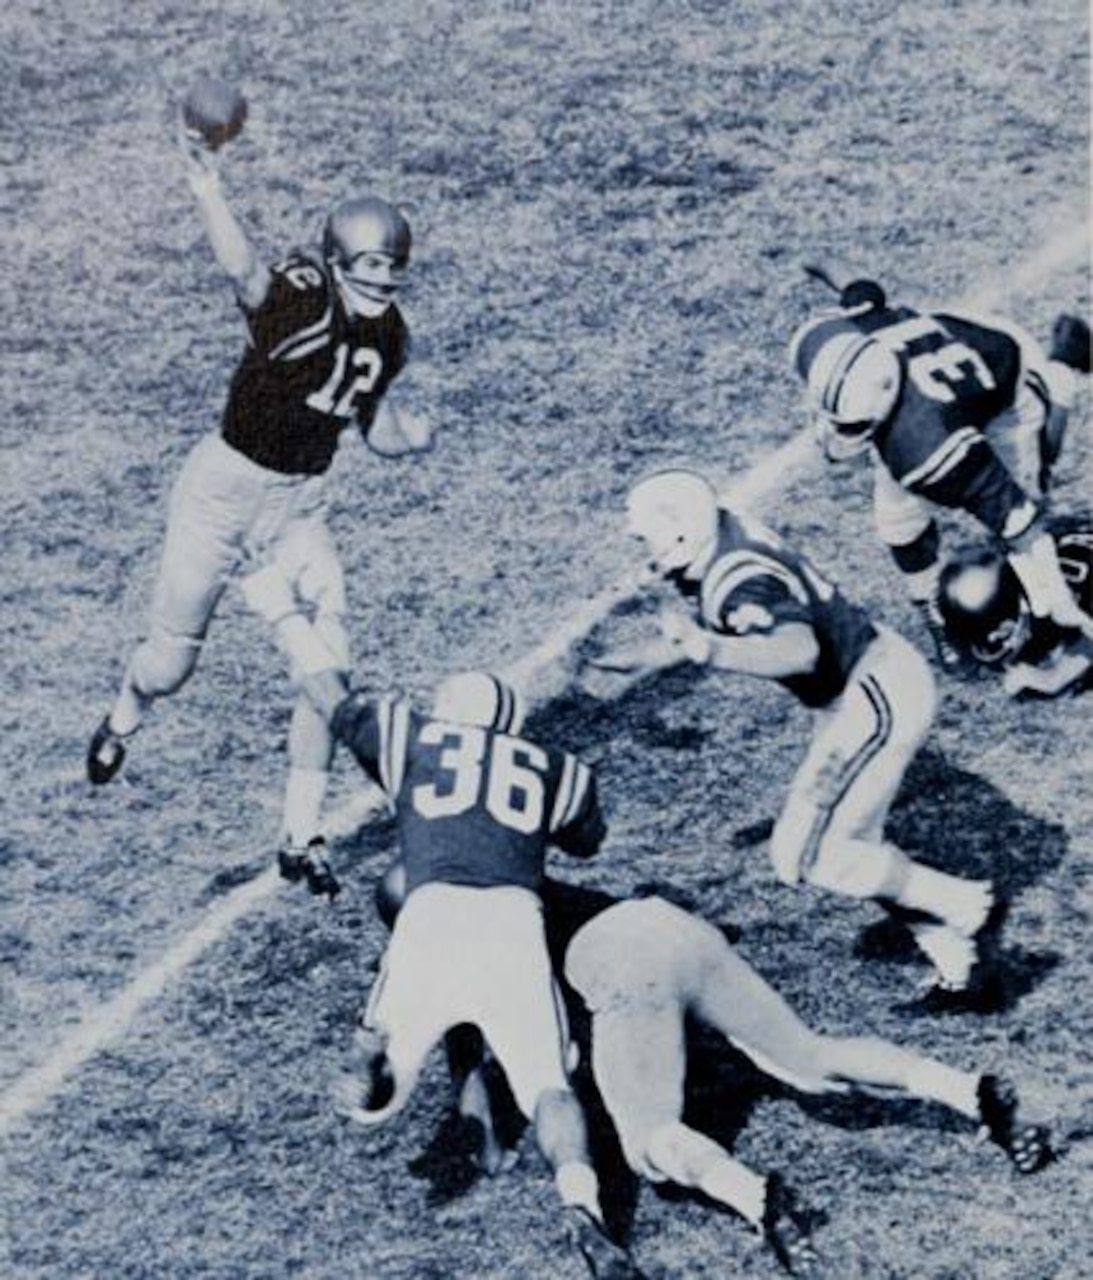 A quarterback prepares to throw the ball as the defensive line approaches.